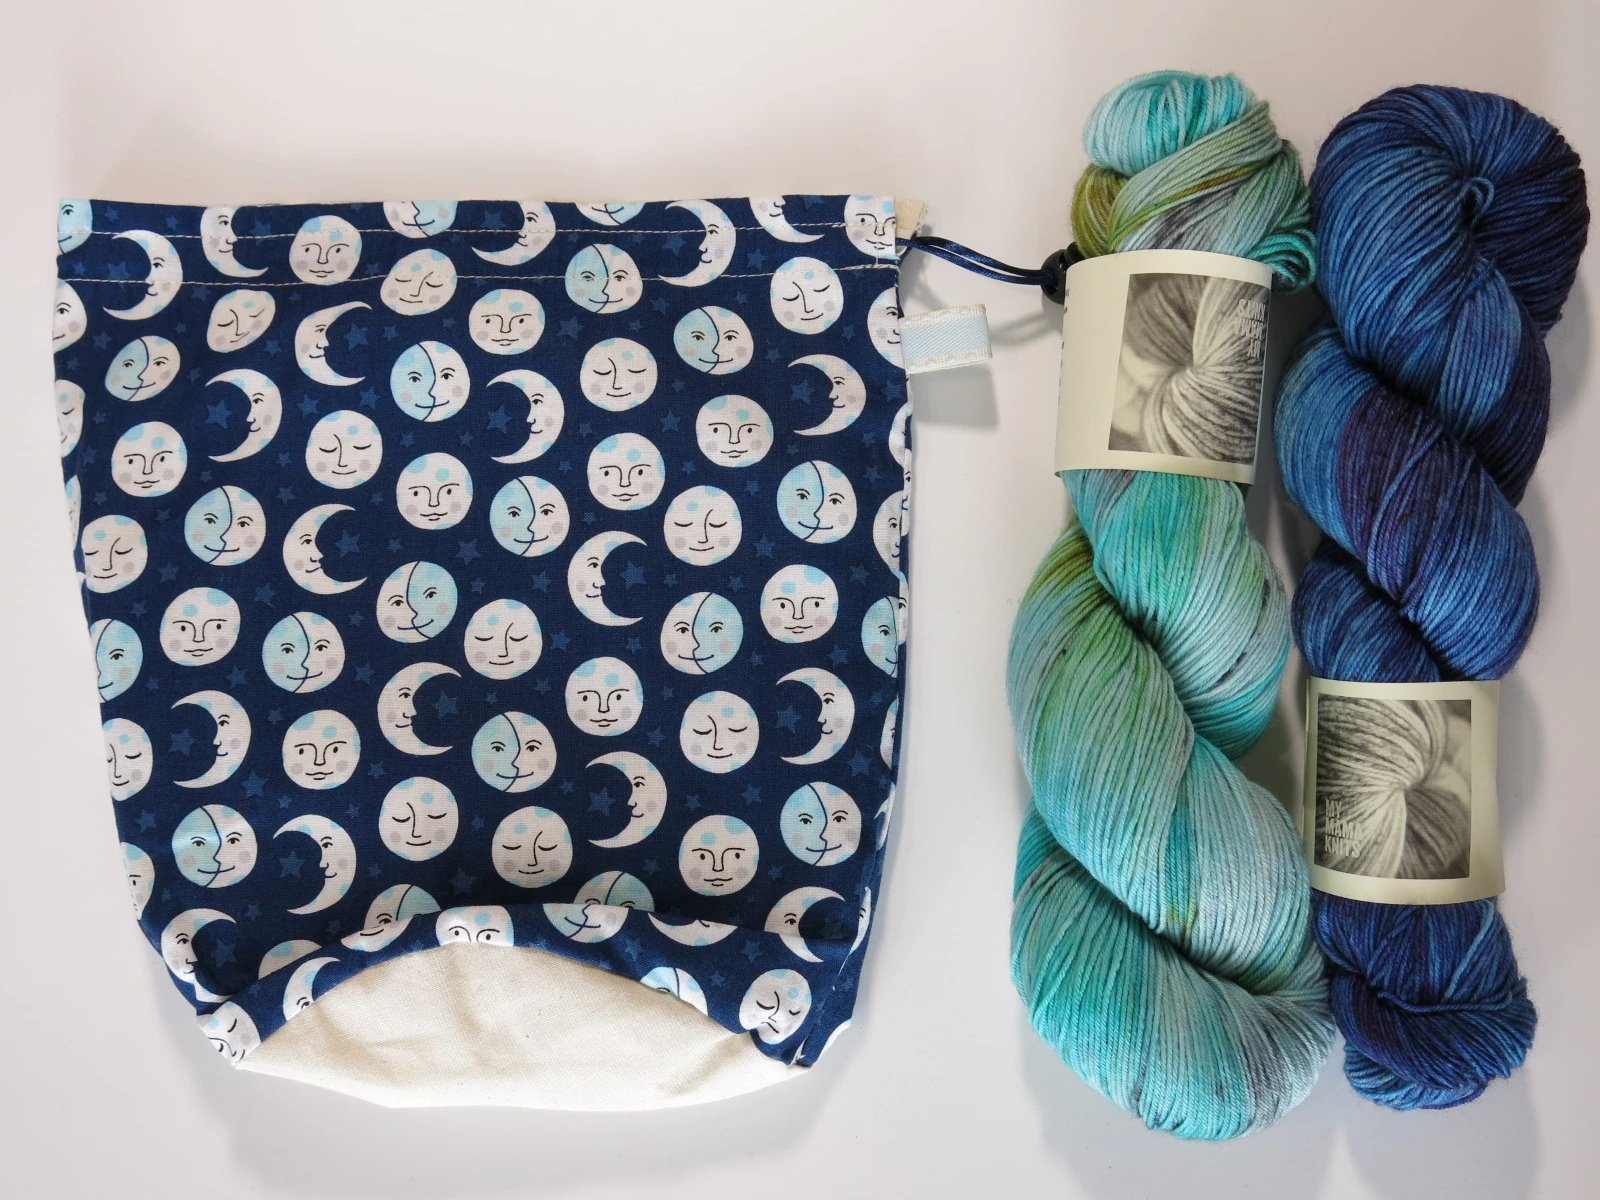 Happy Moon Phases Knitting Project Bag